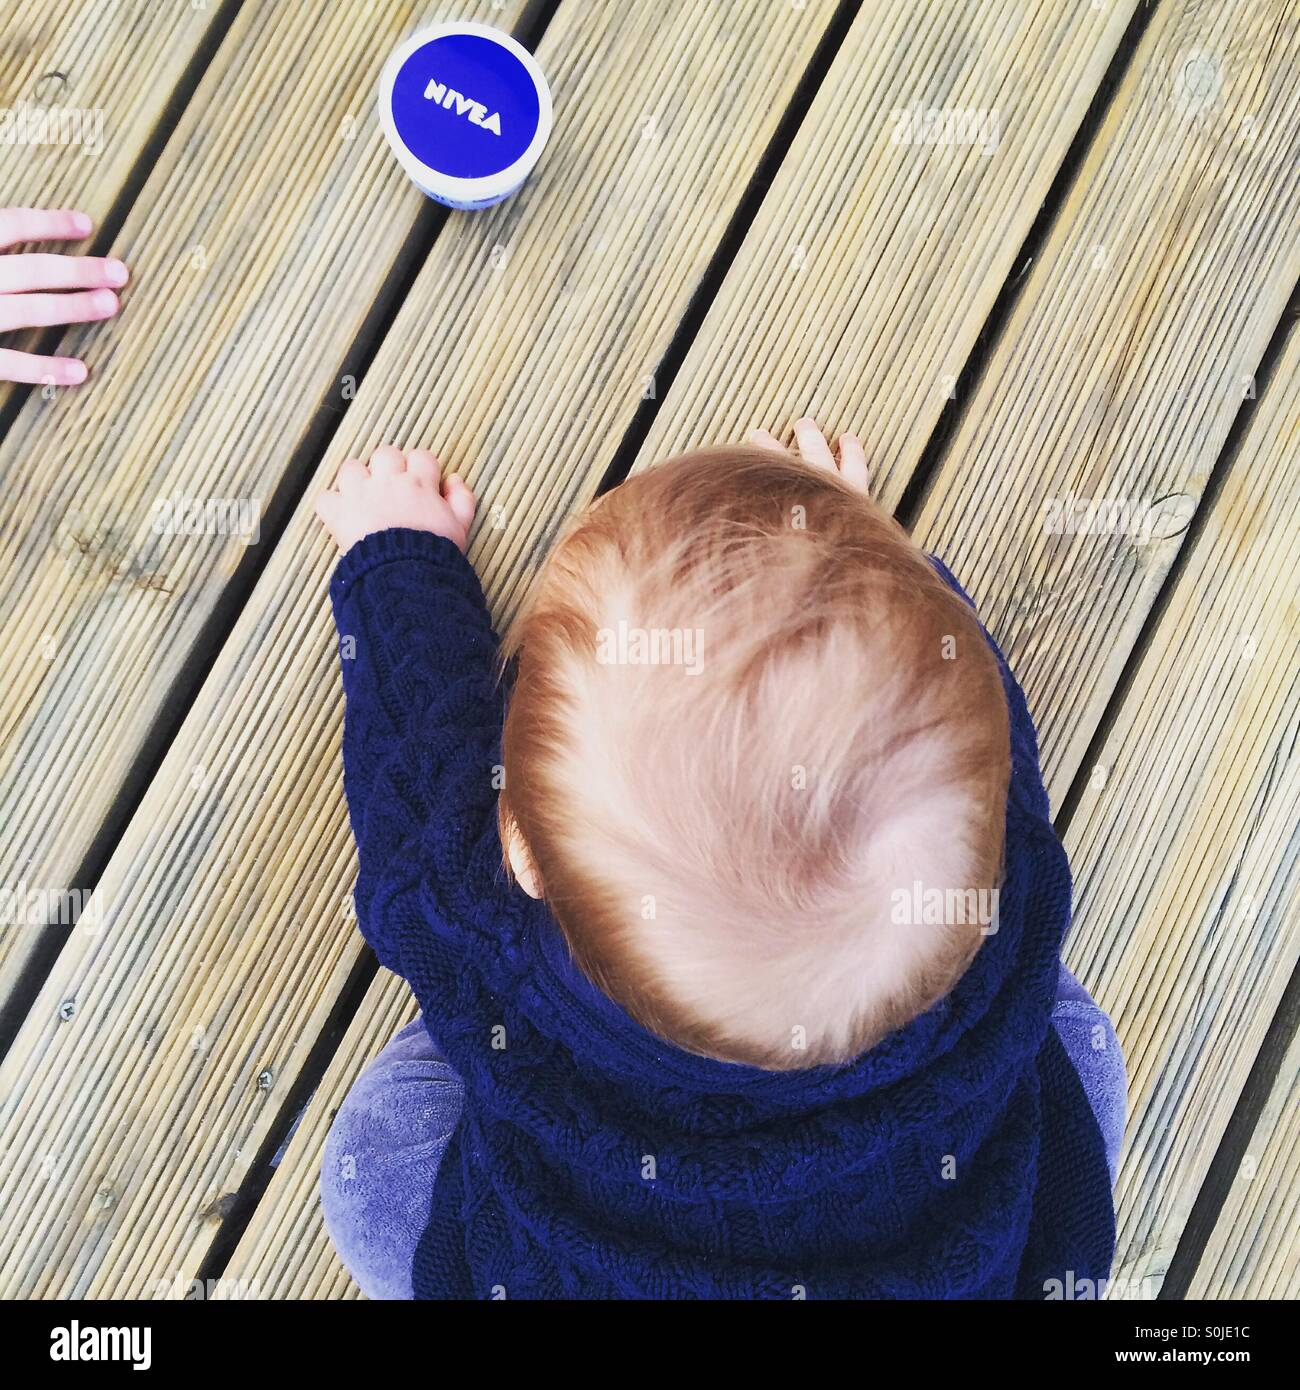 Photo from above  of a baby boy sitting on a wooden deck,  trying to reach the nivea cream - Stock Image